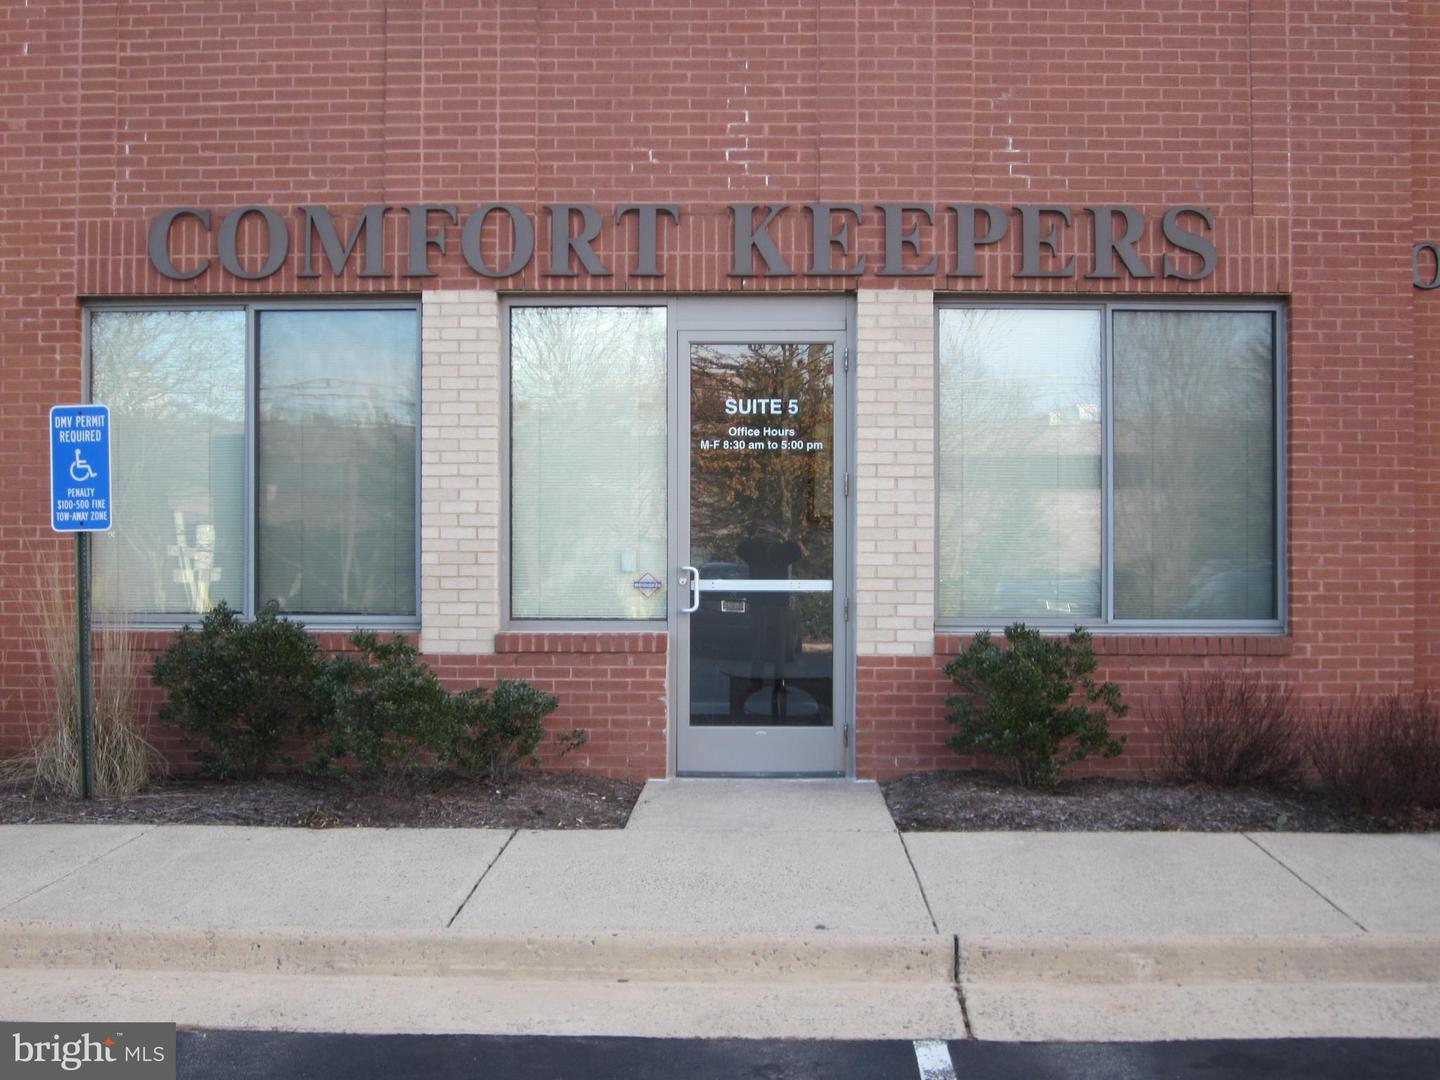 Commercial for Sale at 459 Herndon Pkwy #5 459 Herndon Pkwy #5 Herndon, Virginia 20170 United States